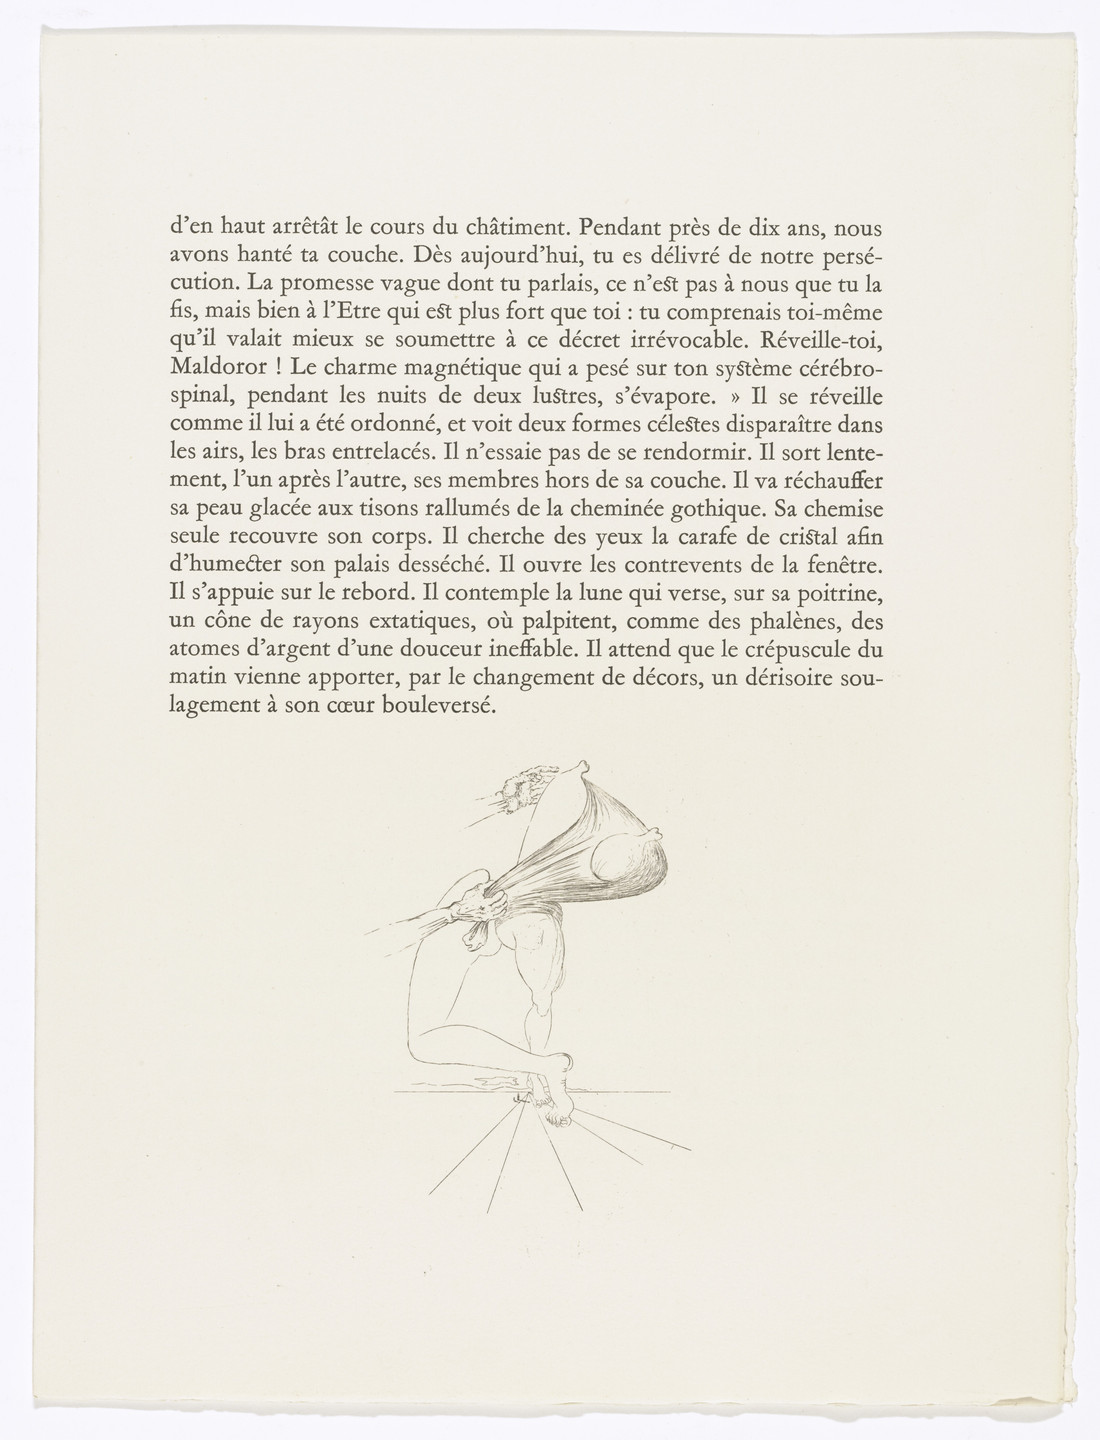 Salvador Dalí. Tailpiece (page 173) from Les Chants de Maldoror (The Songs of Maldoror). 1934